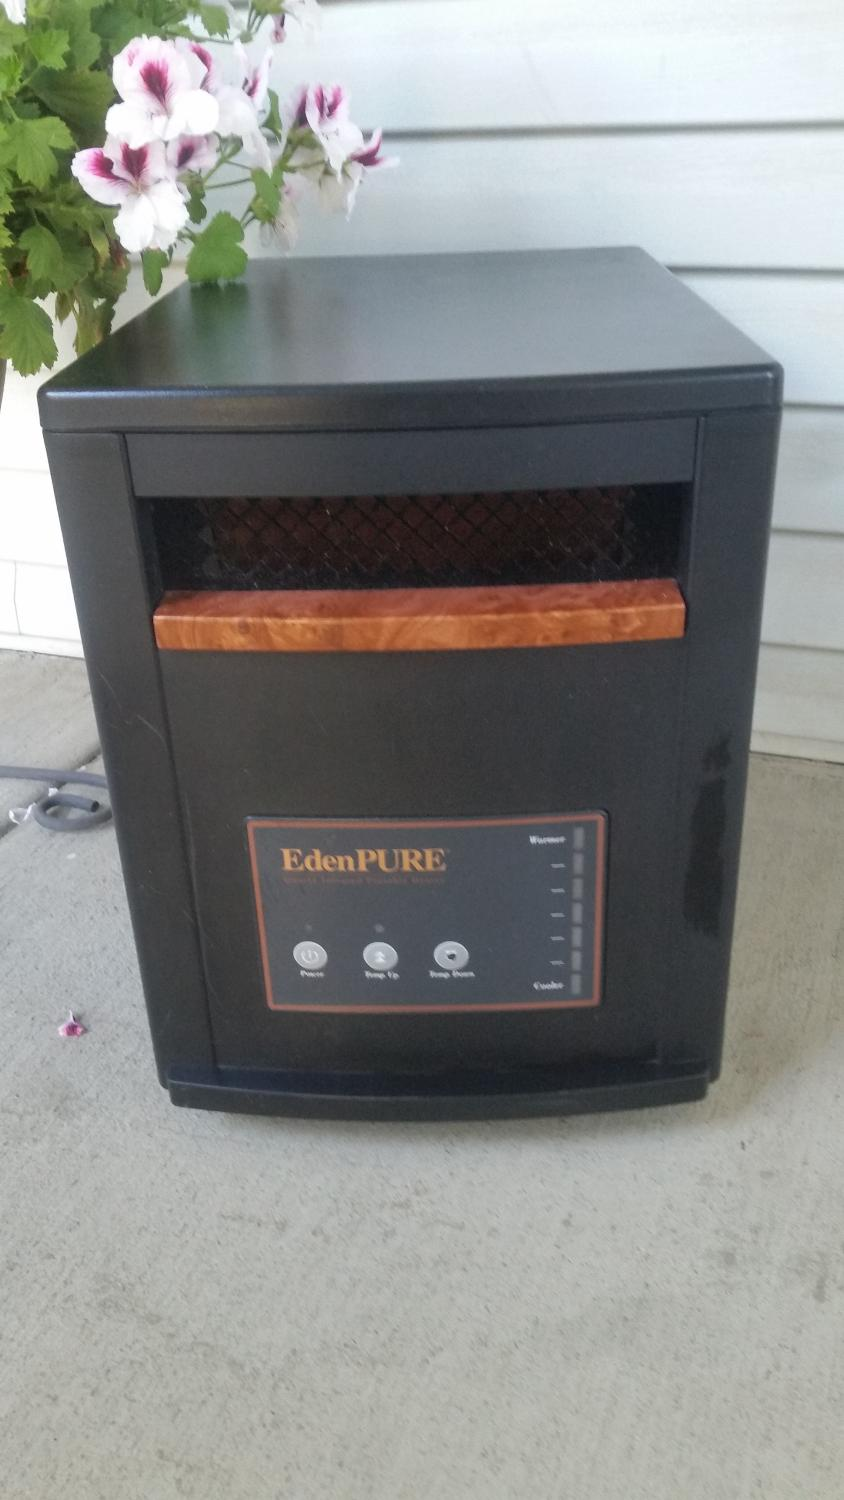 Find more Edenpure Quartz Infrared Portable Heater for sale at up to ...